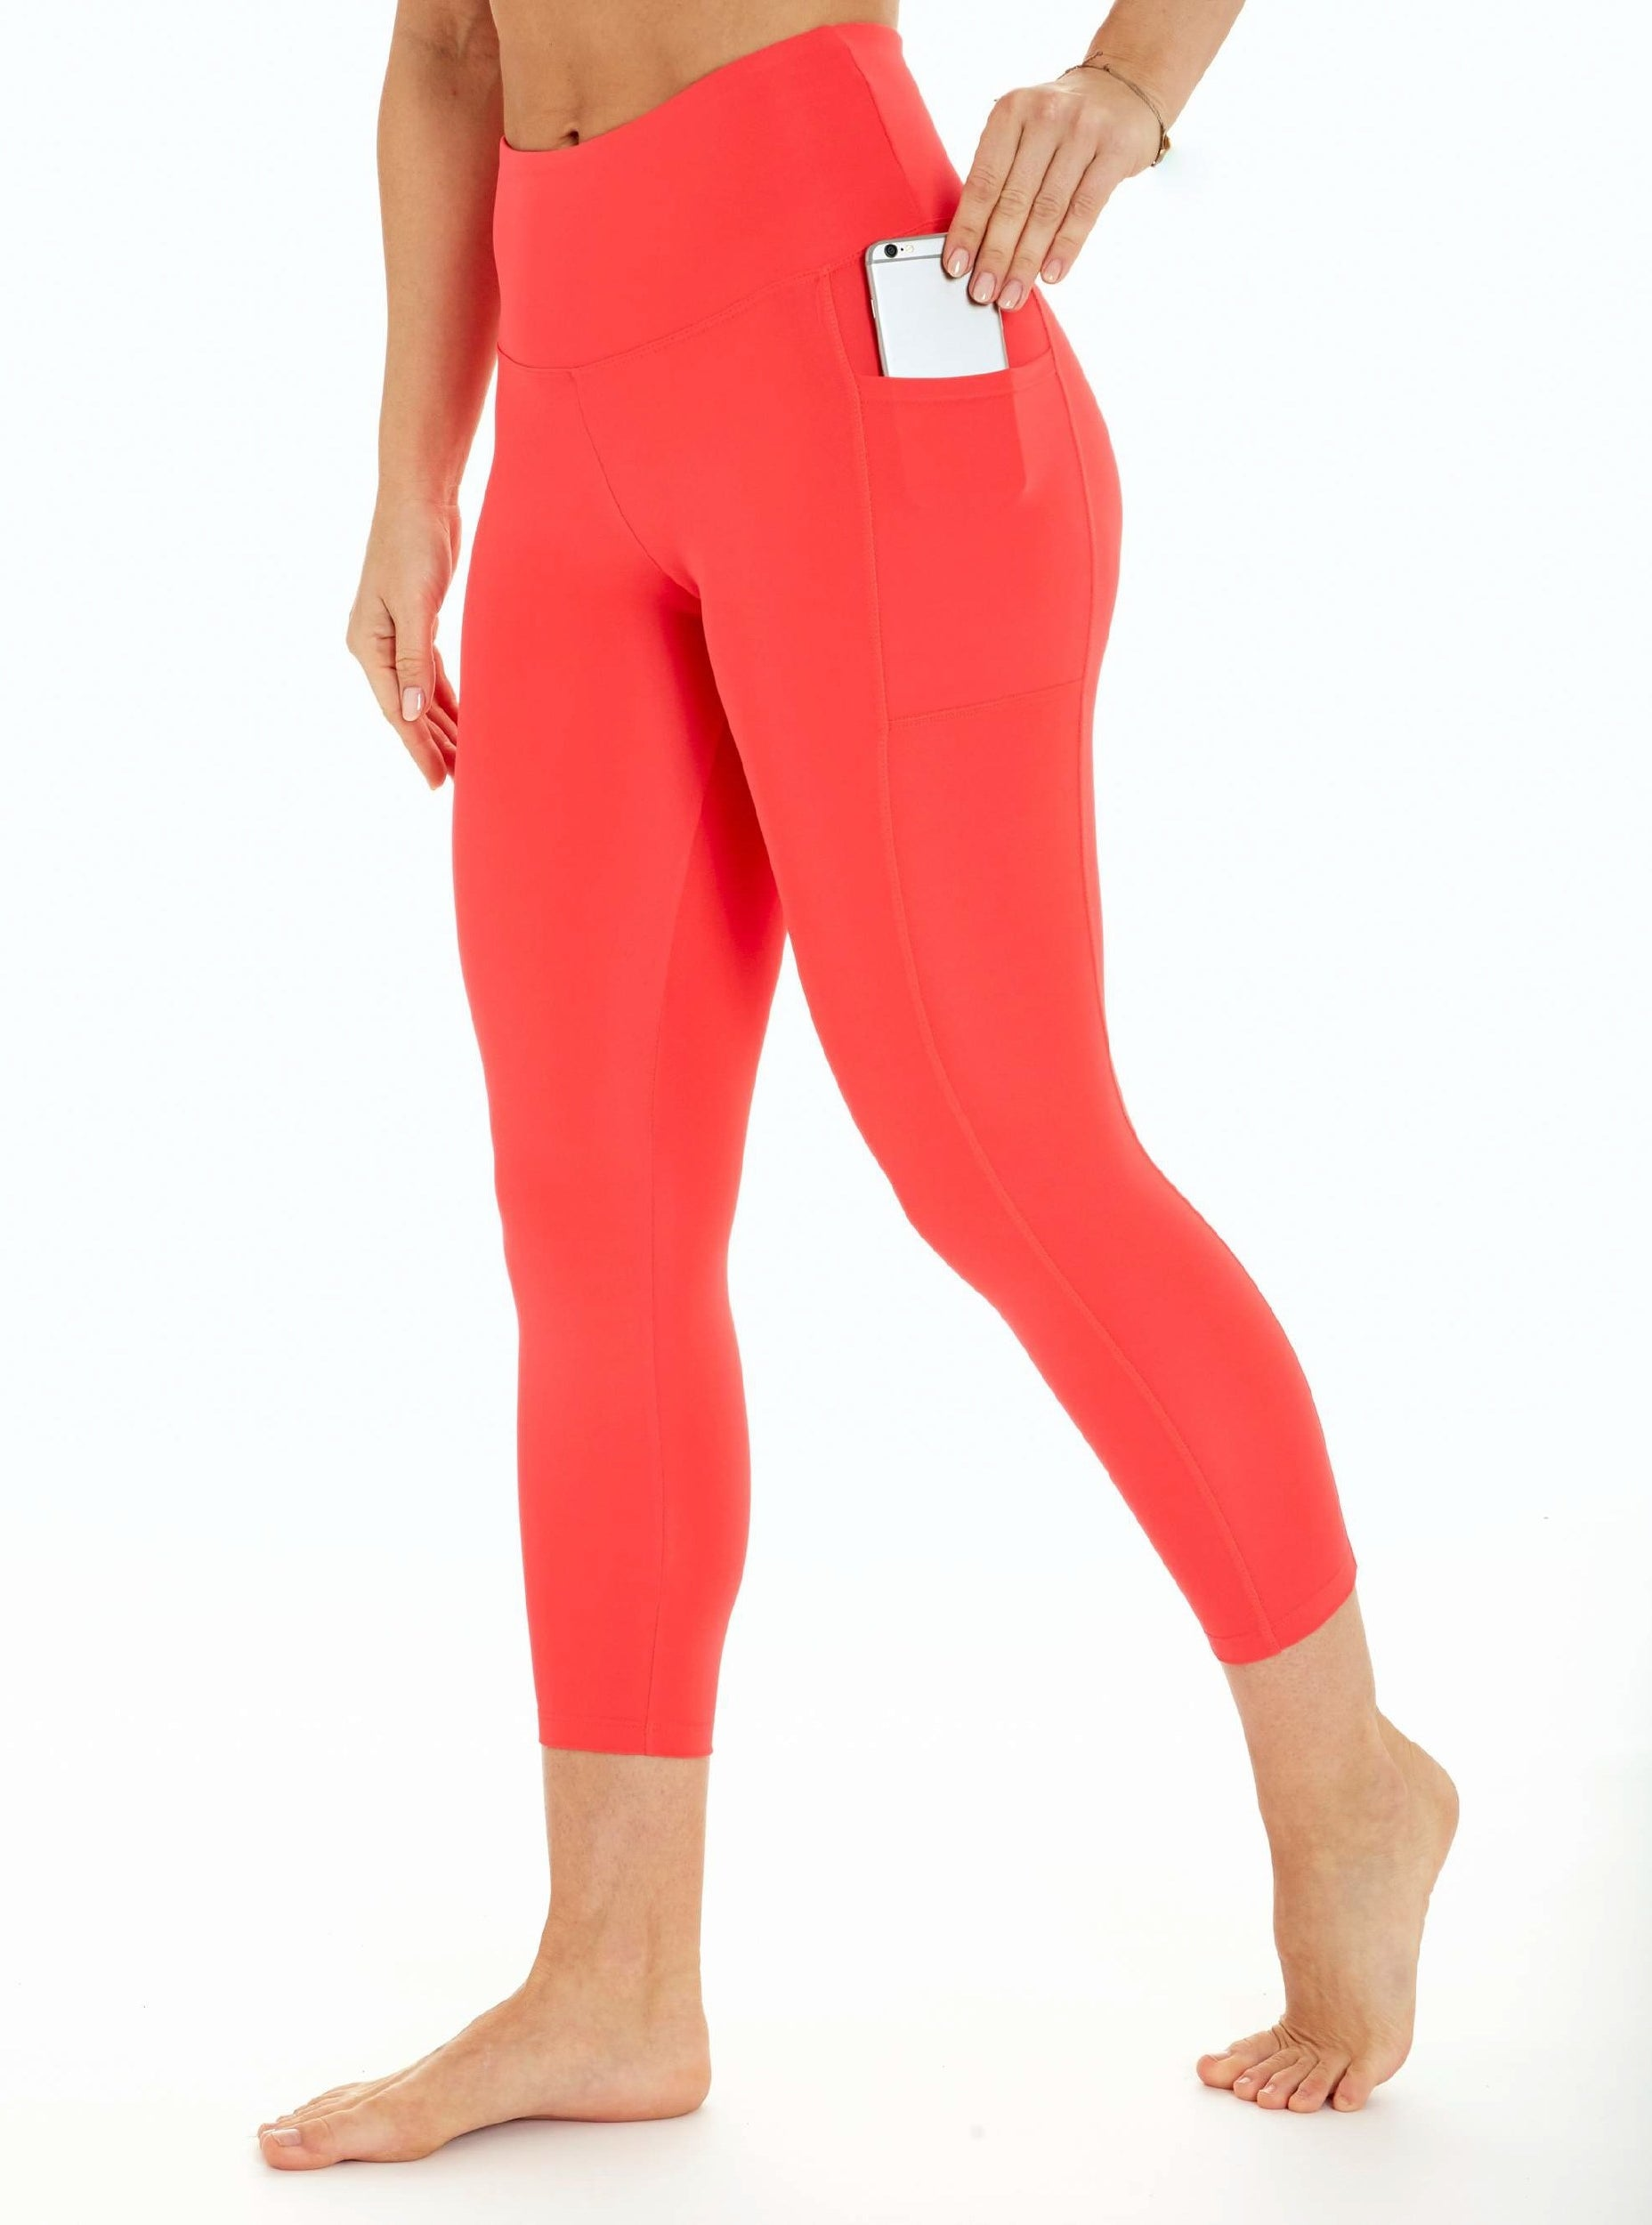 Model wearing the bright red leggings